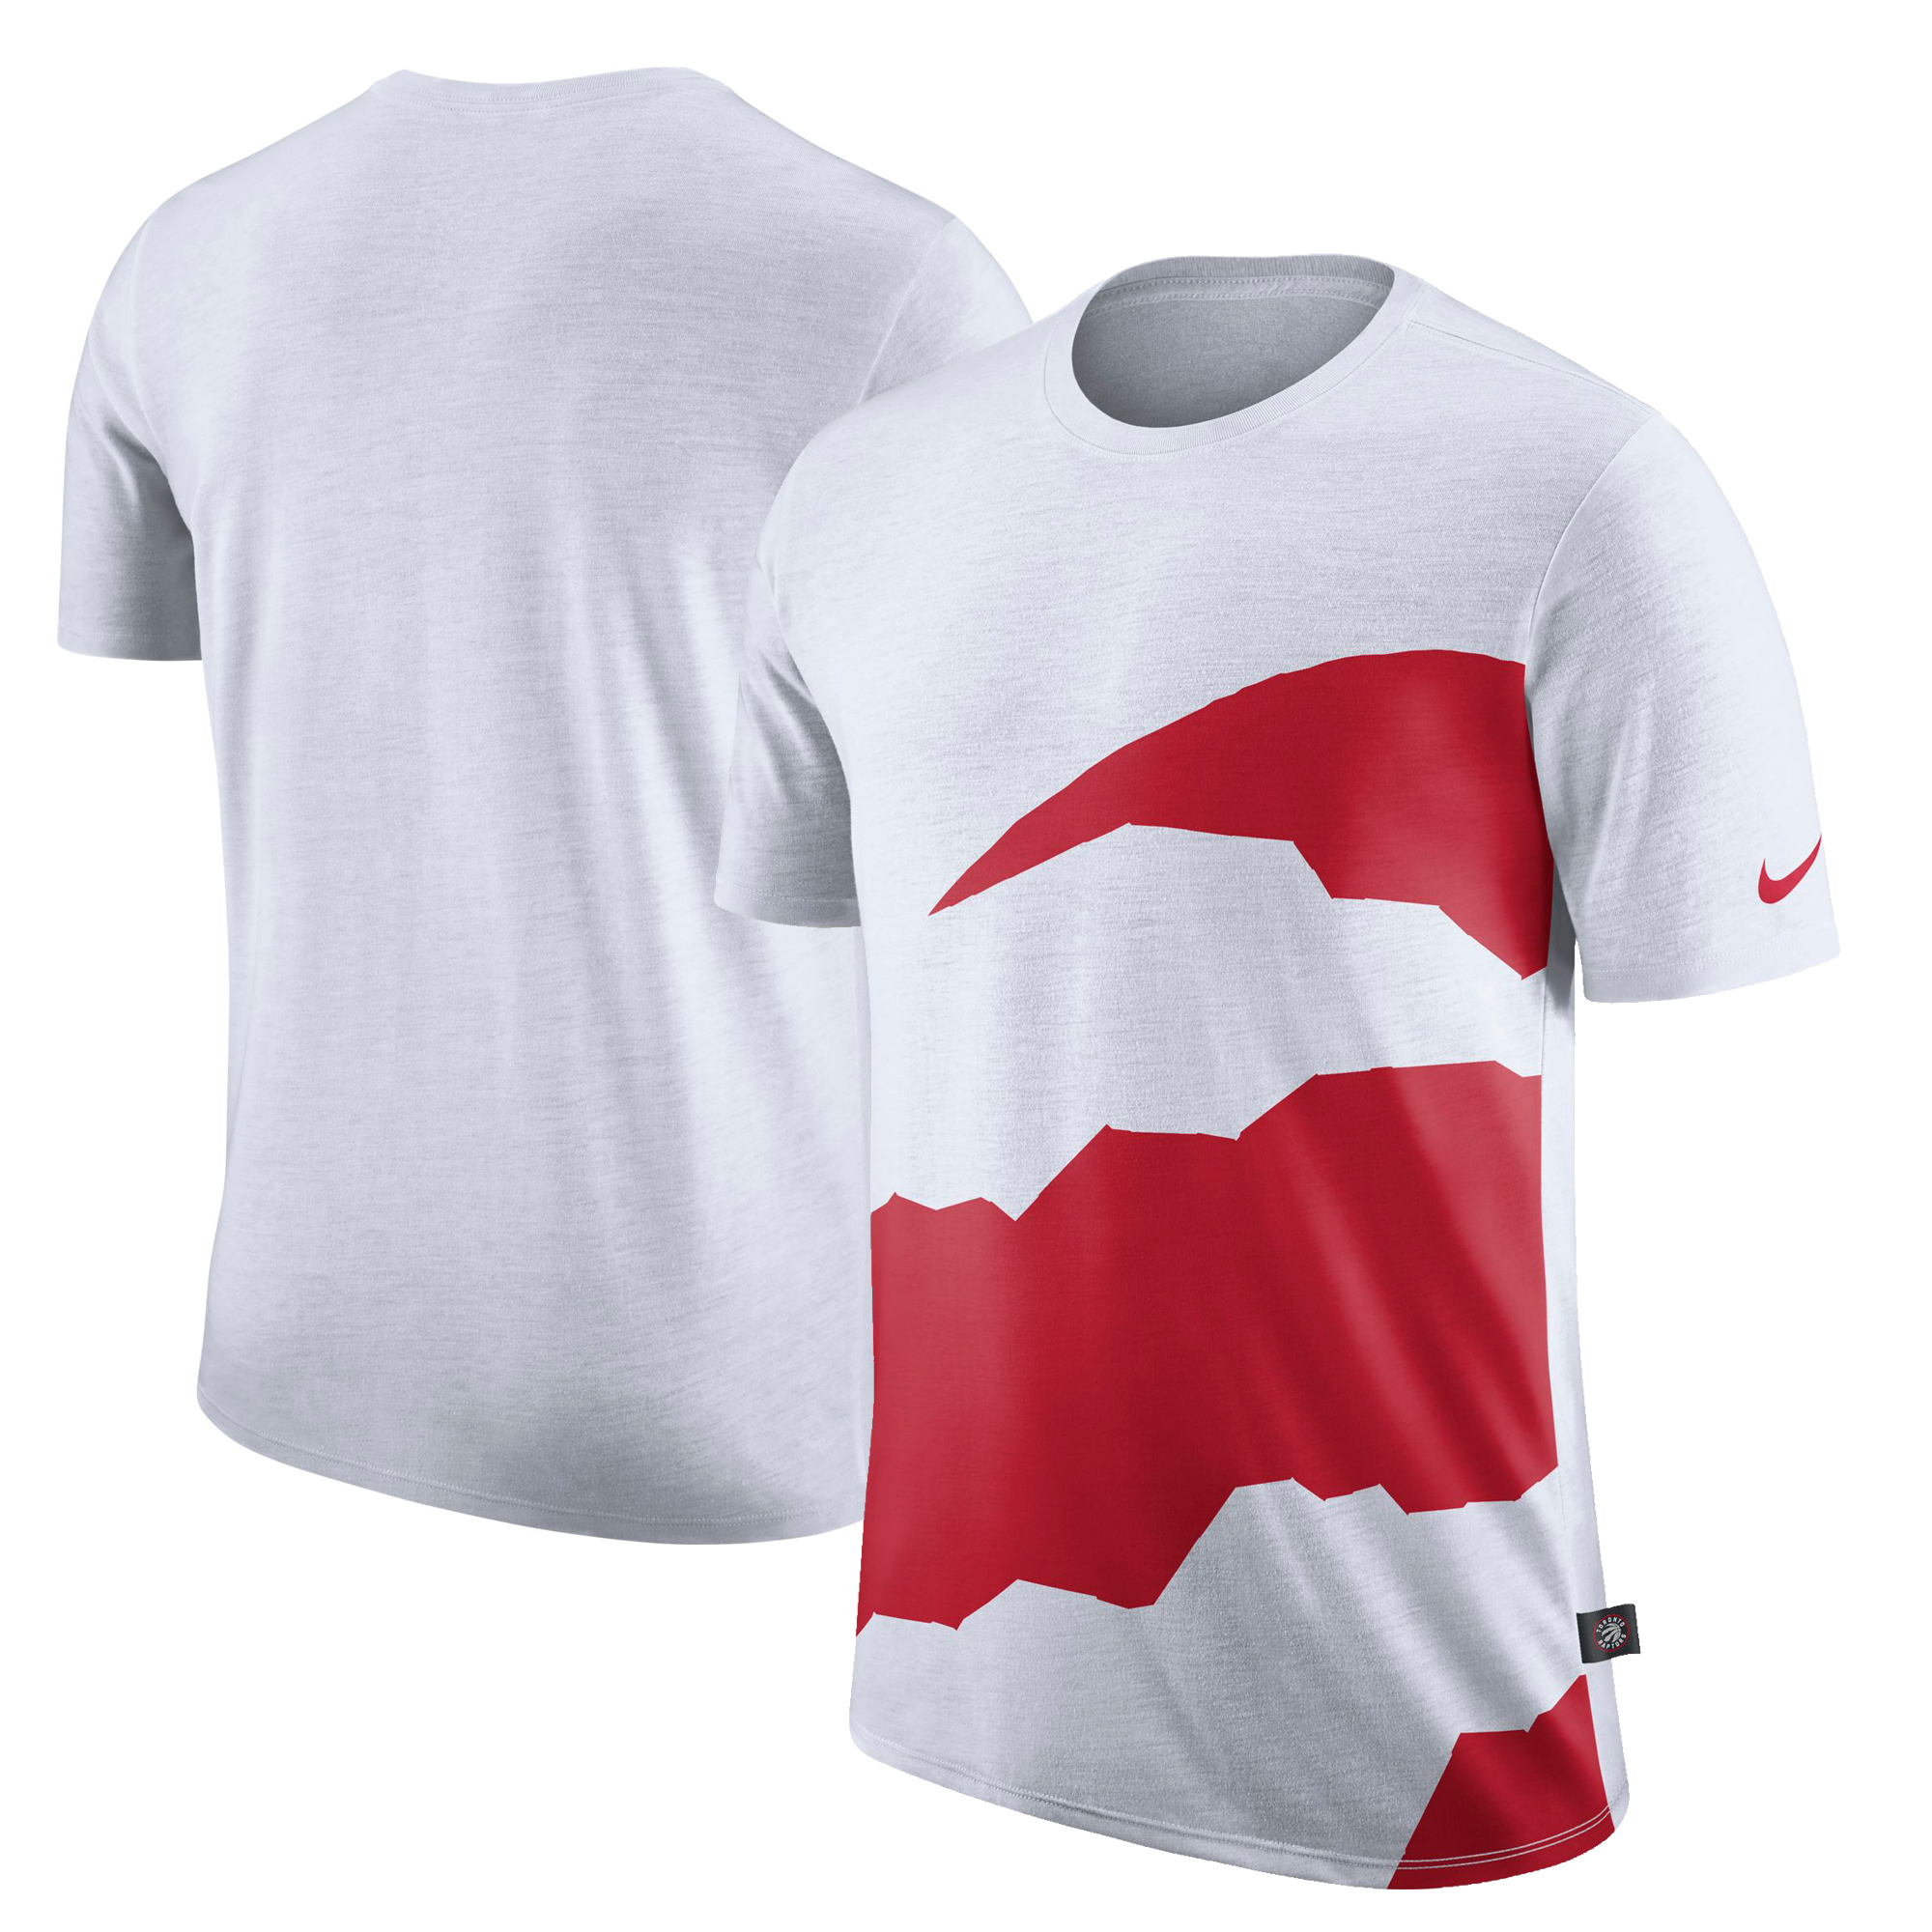 Toronto Raptors Nike DNA T-Shirt - White